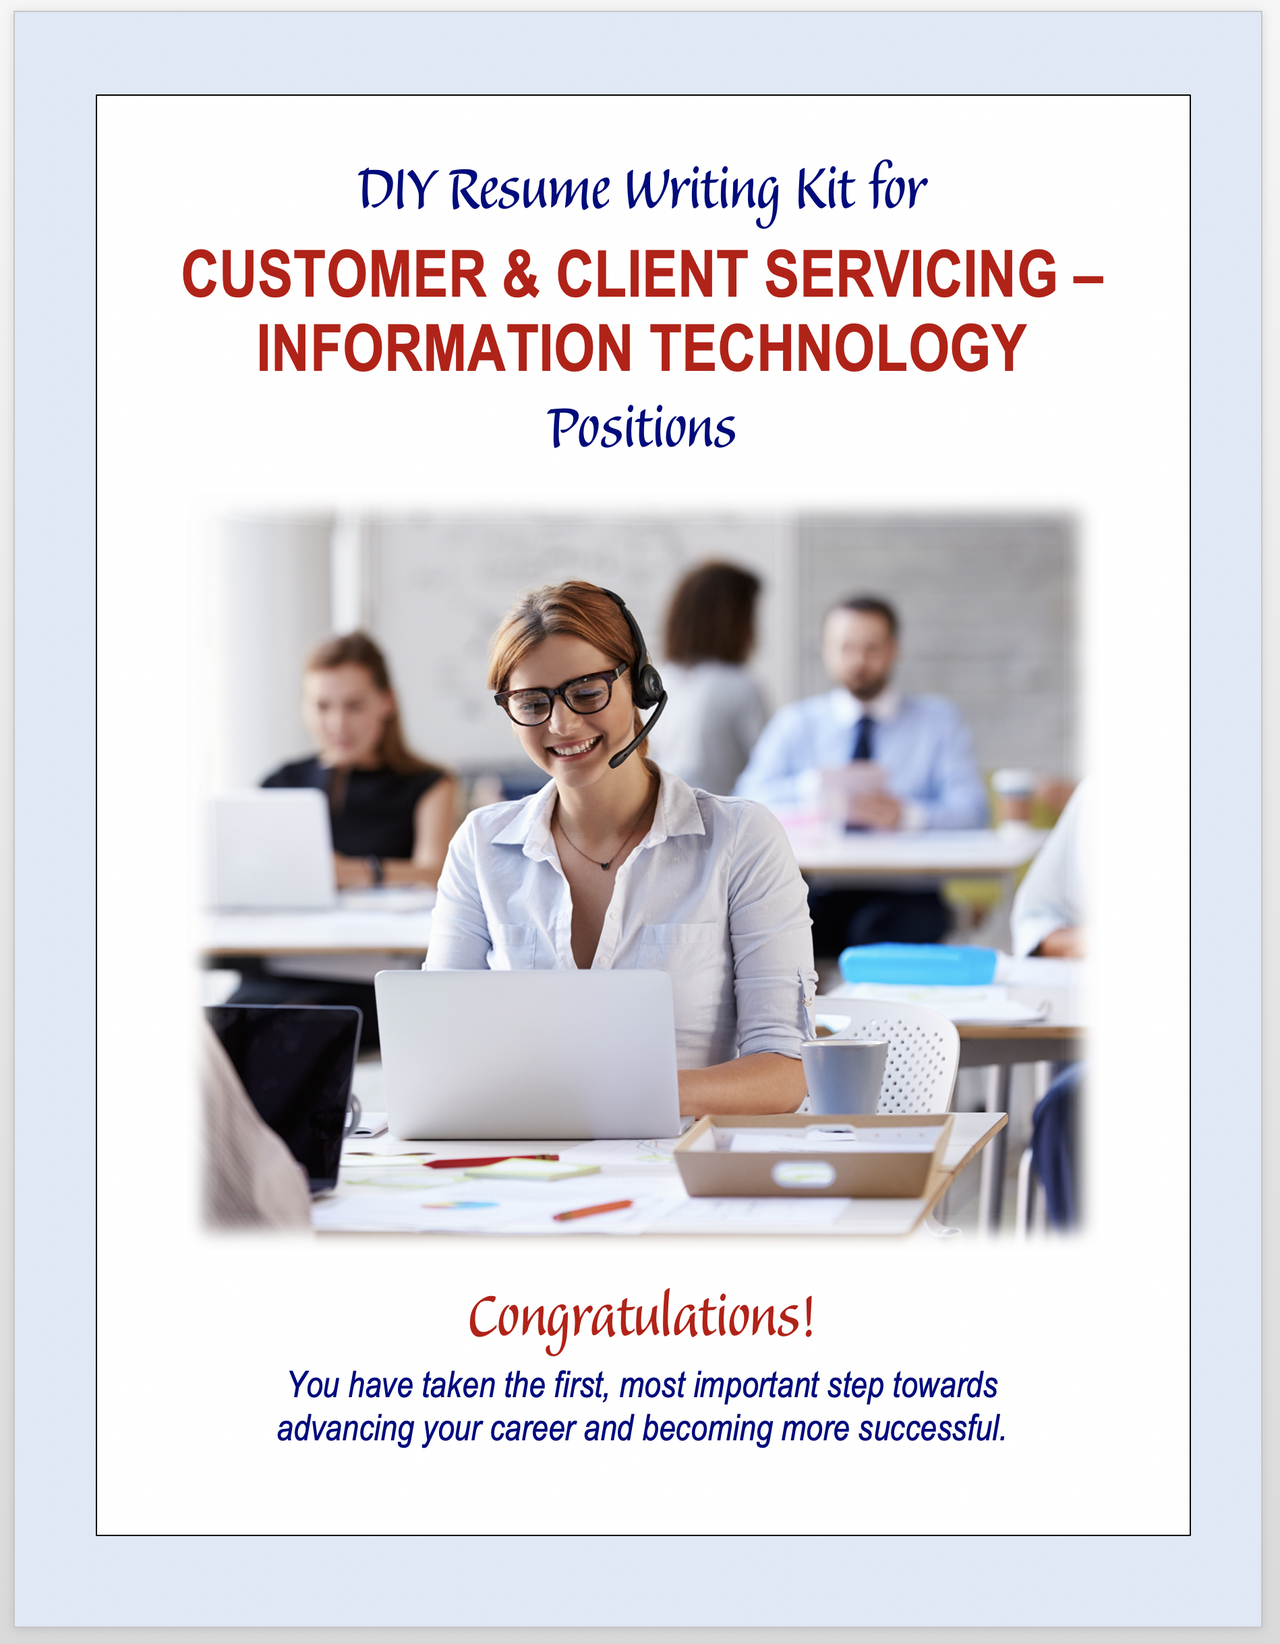 customer & client servicing - it.png